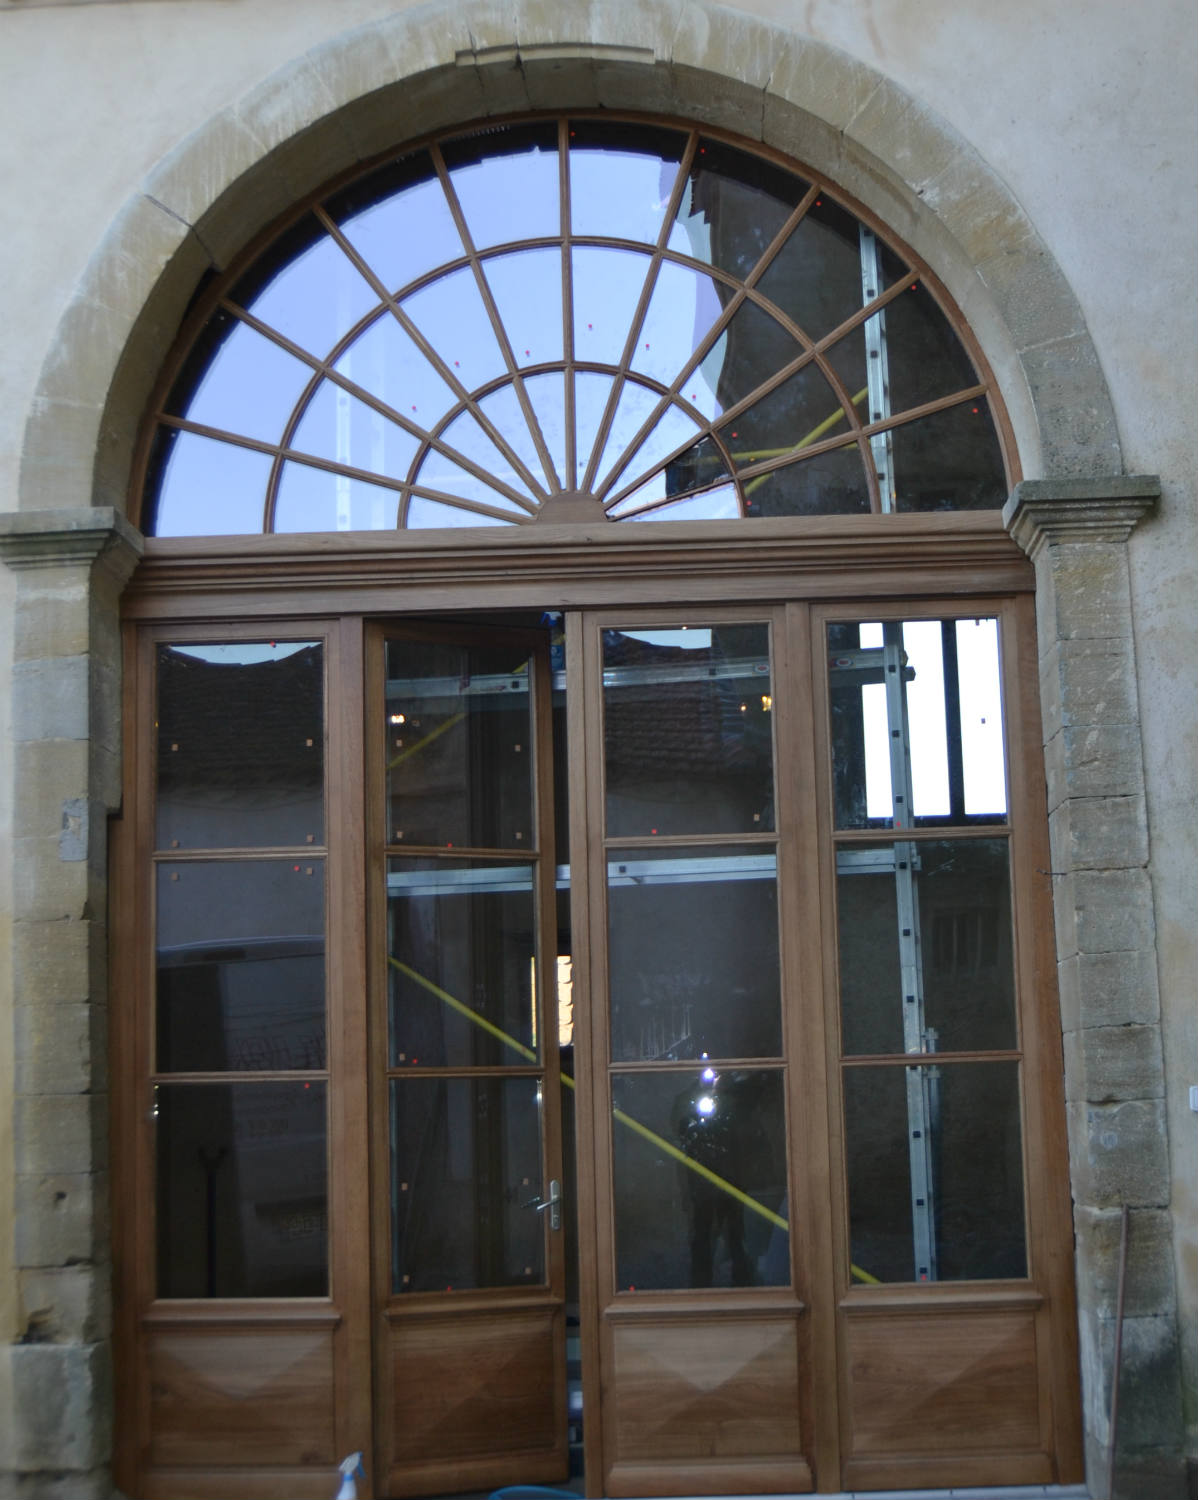 Porte Fenetre Arrondie Of Porte Bois Cintree Images